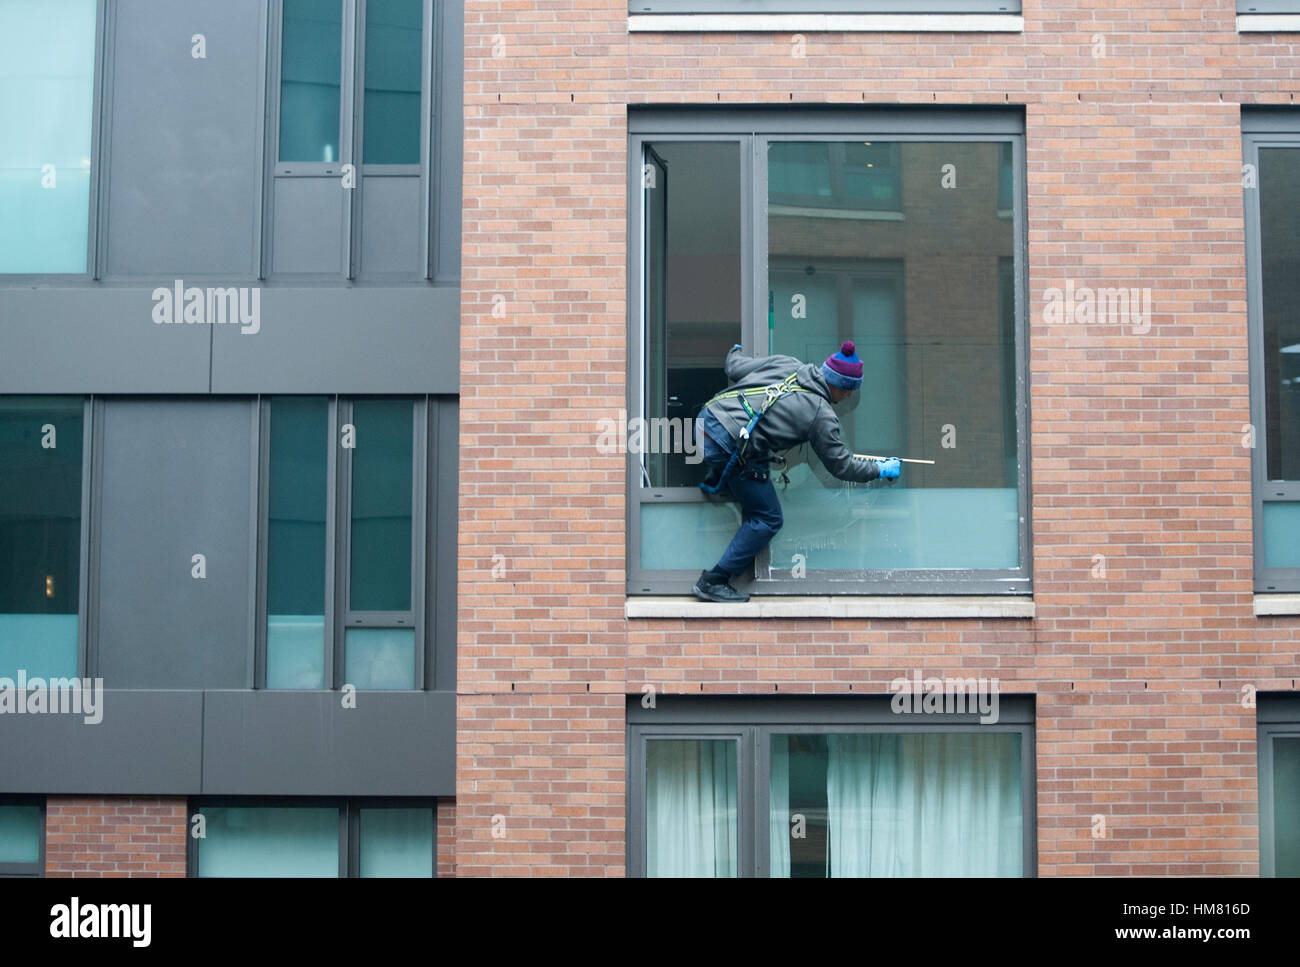 A Man Balanced Himself As He Washed Windows In An Apartment Building In  Manhattan, New York City. Jan. 20, 2017